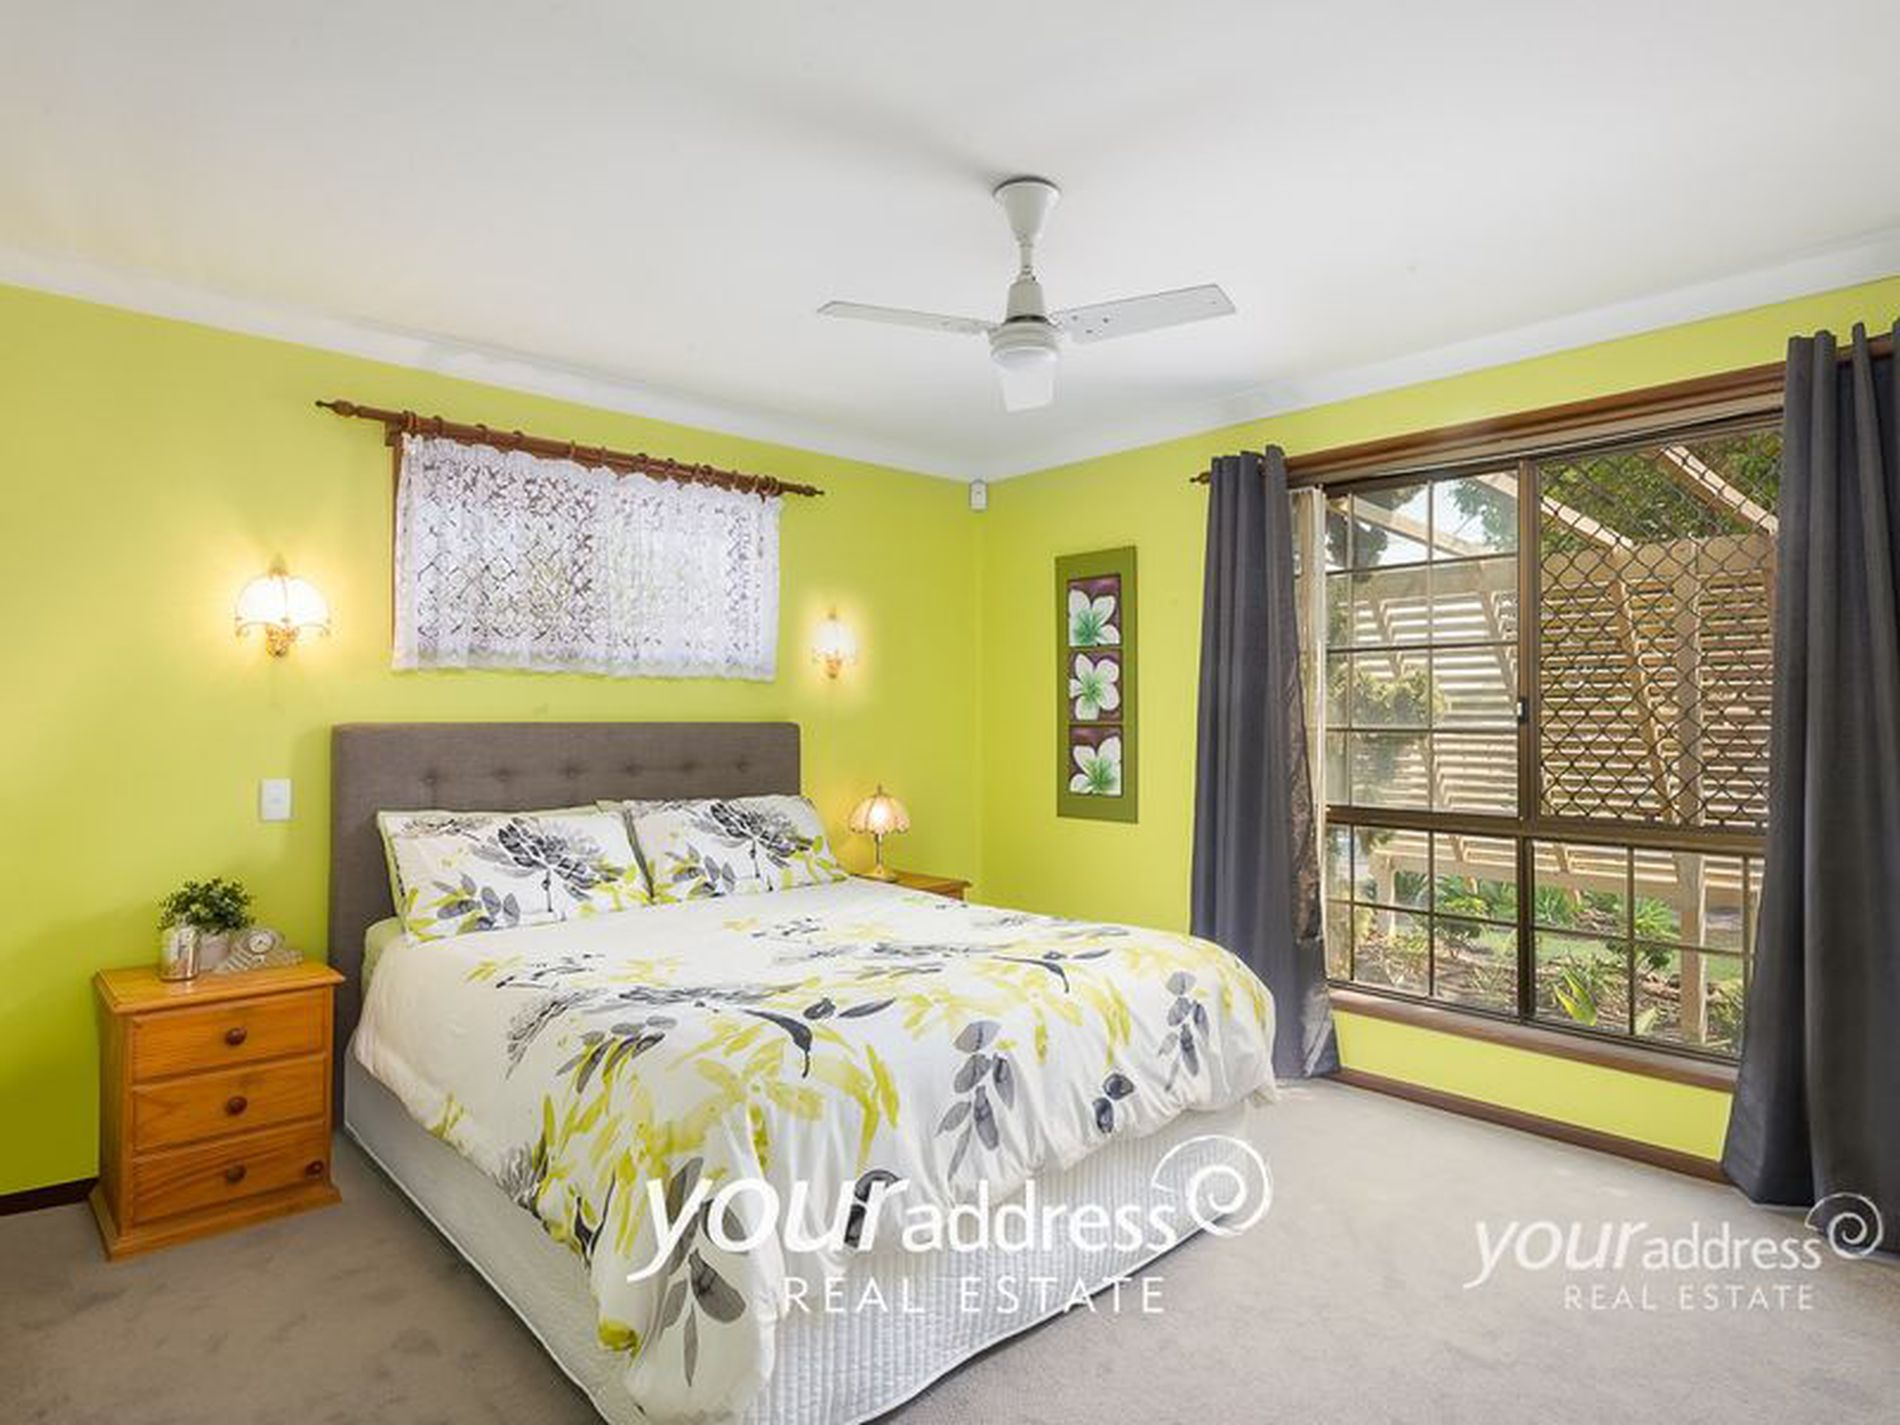 141 Vansittart Road, Regents Park